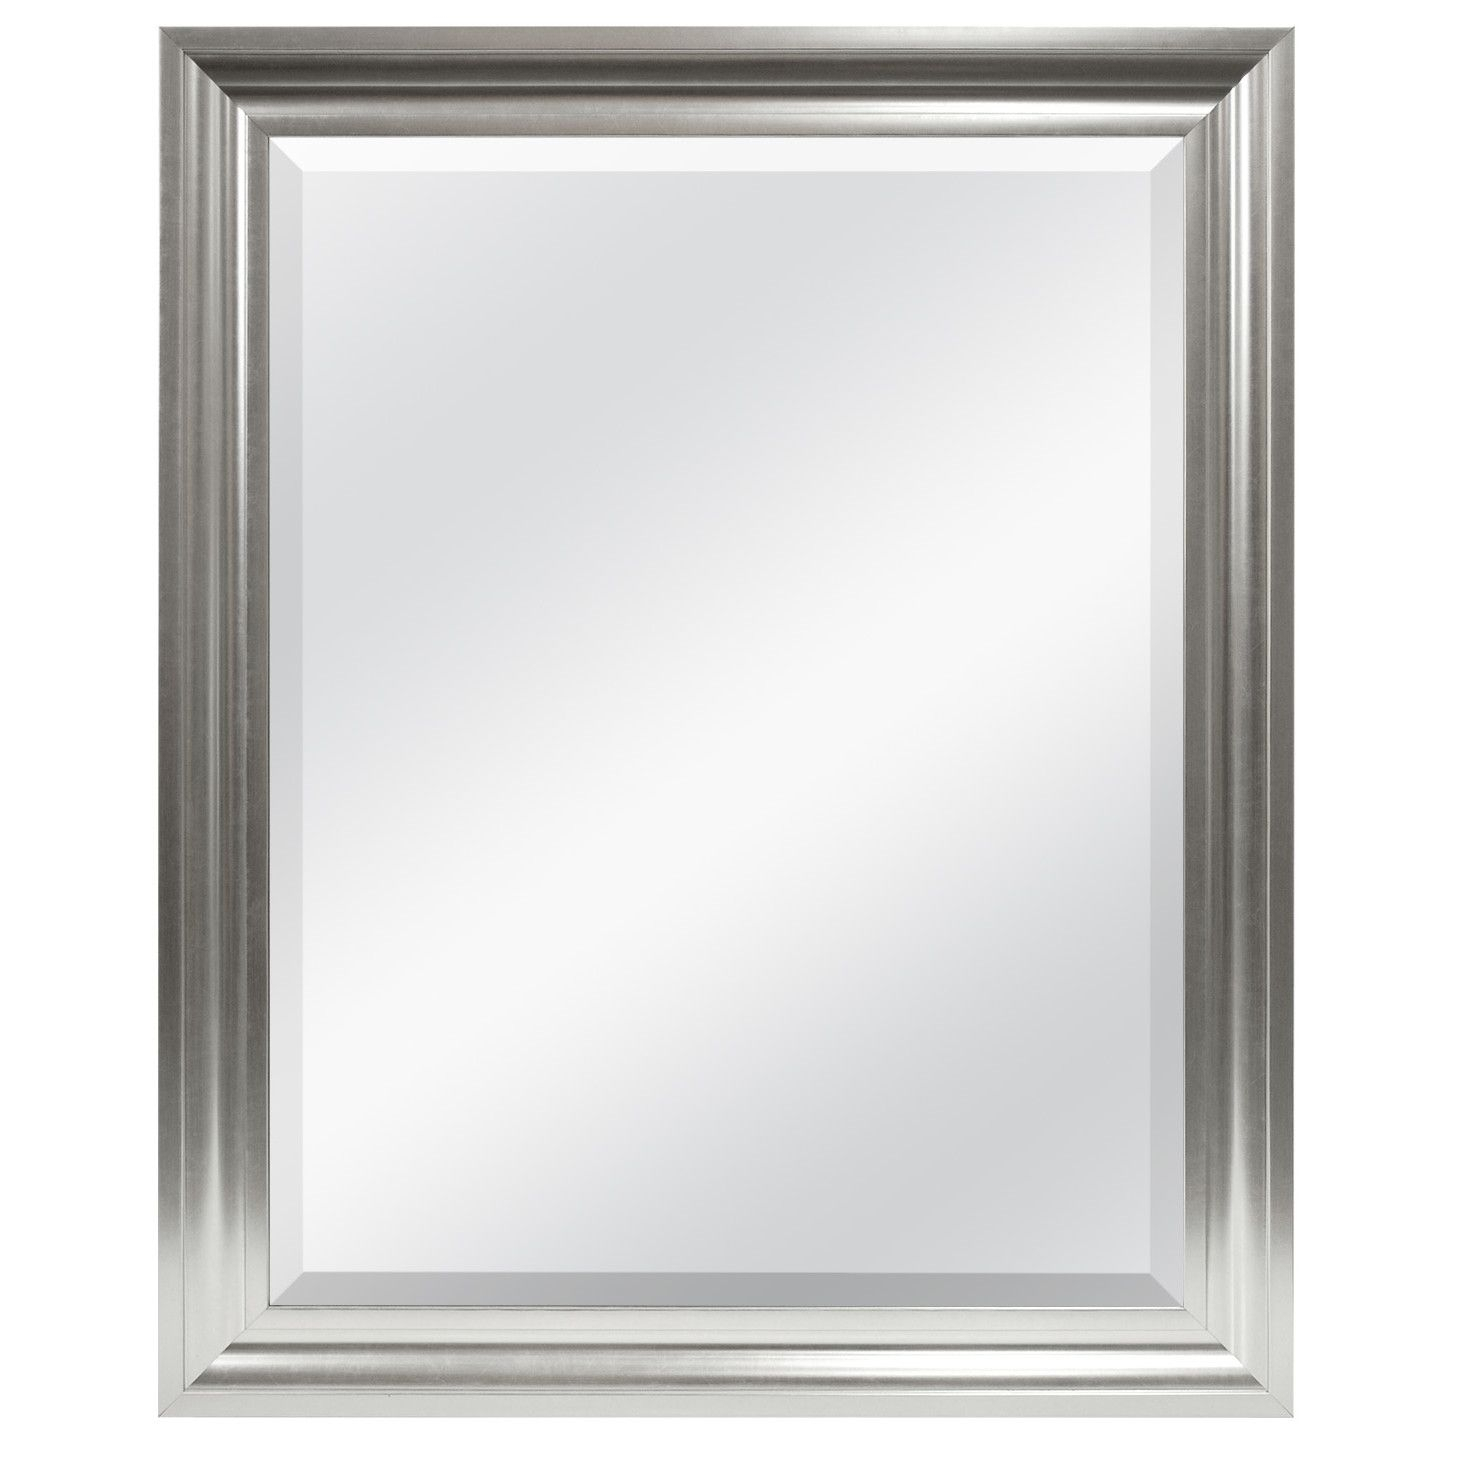 Rectangle Plastic Beveled Wall Mirror | Mirrors | Beveled Inside Rectangle Pewter Beveled Wall Mirrors (Image 18 of 20)